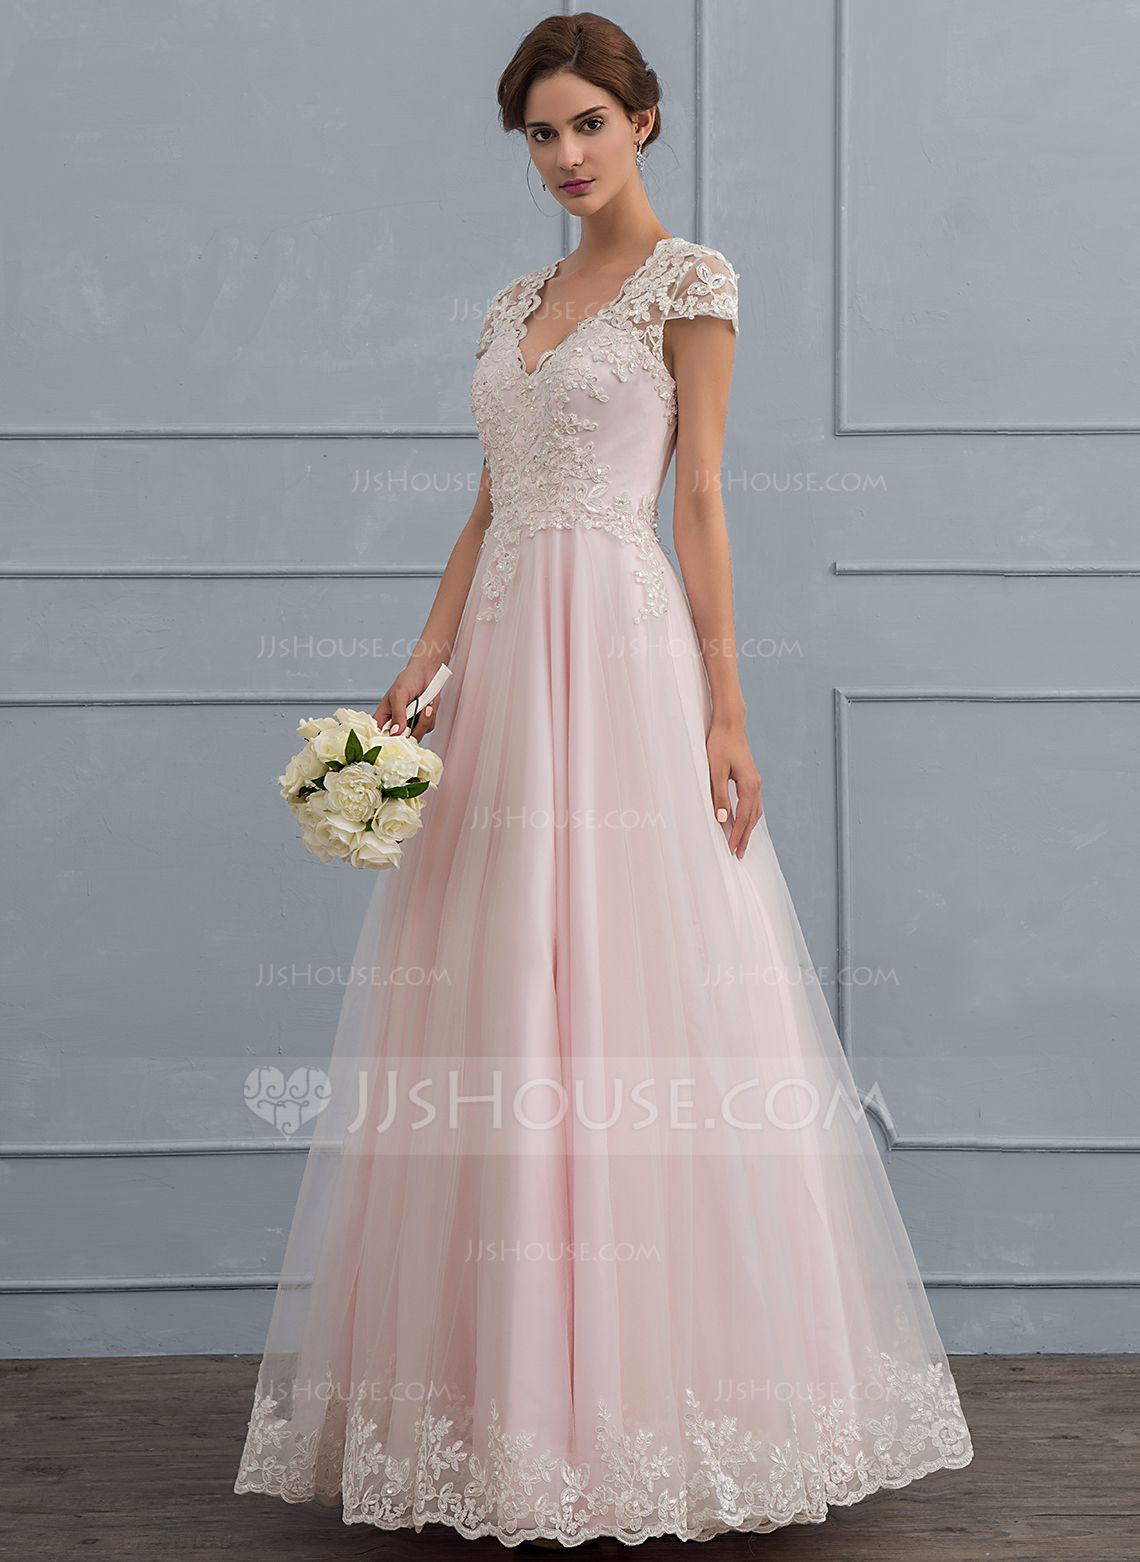 Us 188 00 Ball Gown Princess V Neck Floor Length Tulle Wedding Dress With Beading Sequins Jj S House Tulle Wedding Dress Short Sleeve Wedding Dress Wedding Dresses [ 1562 x 1140 Pixel ]